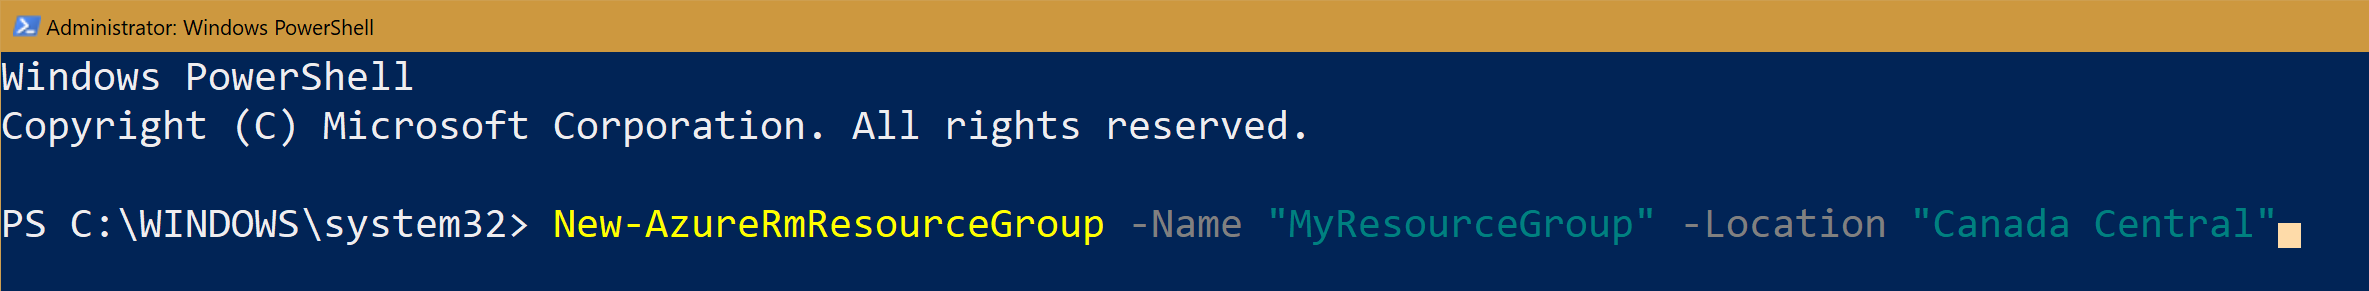 PowerShell command to create a new Azure Resource Group